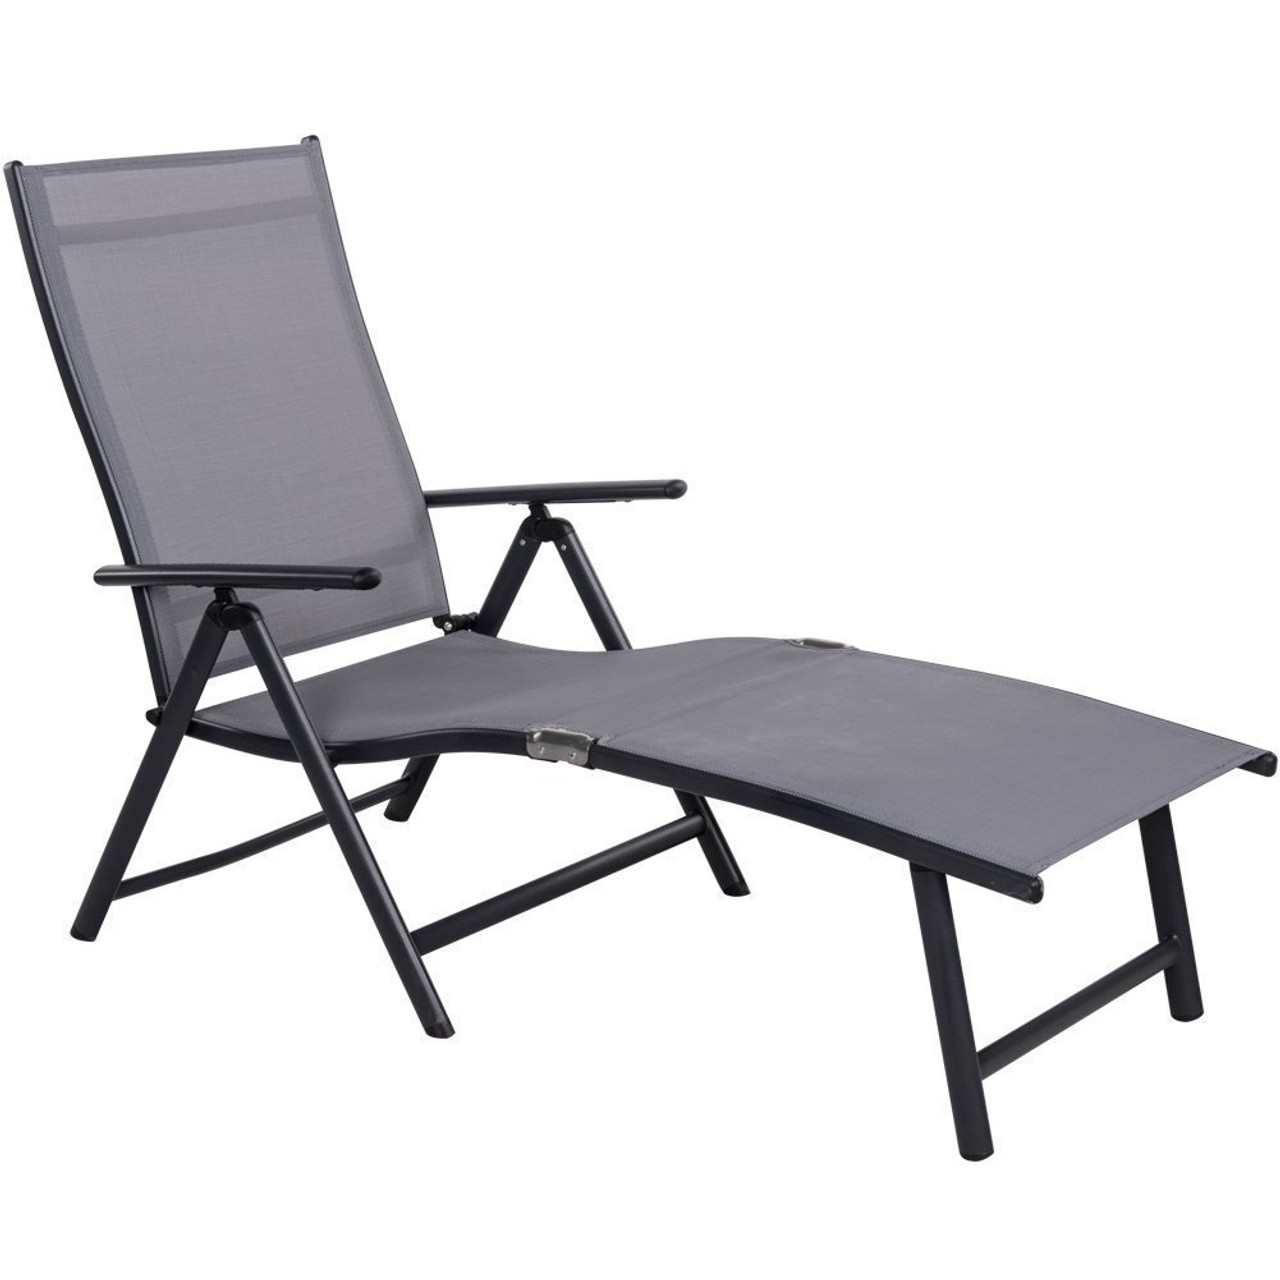 beach pool commercial plastic cushions bahia chairs furniture lounge chaise outdoor resin grosfillex